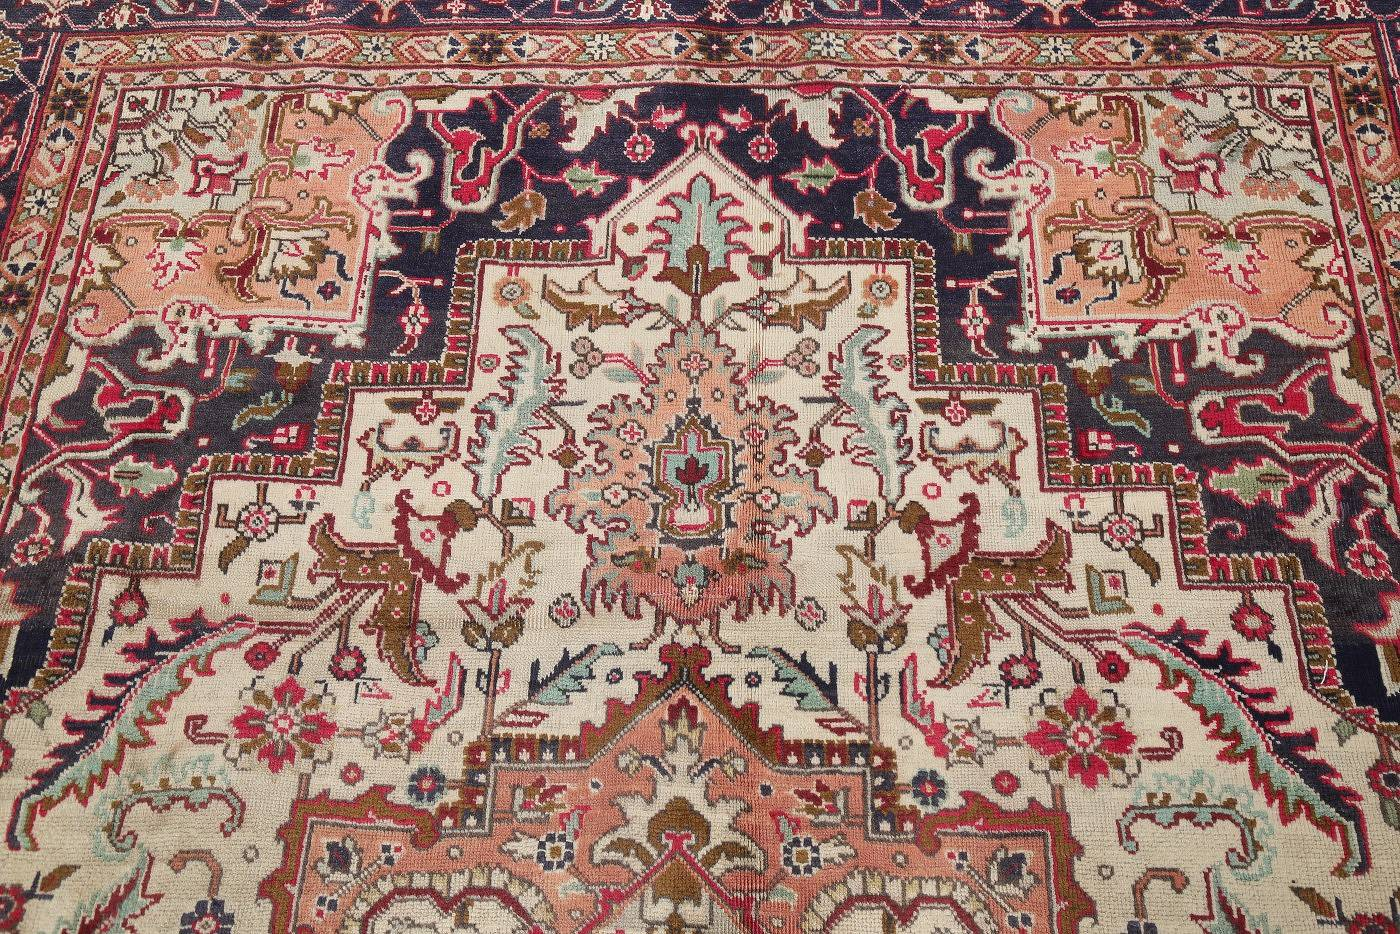 One-of-a-Kind Antique Heriz Serapi Persian Hand-Knotted 7x9 Wool Area Rug image 13